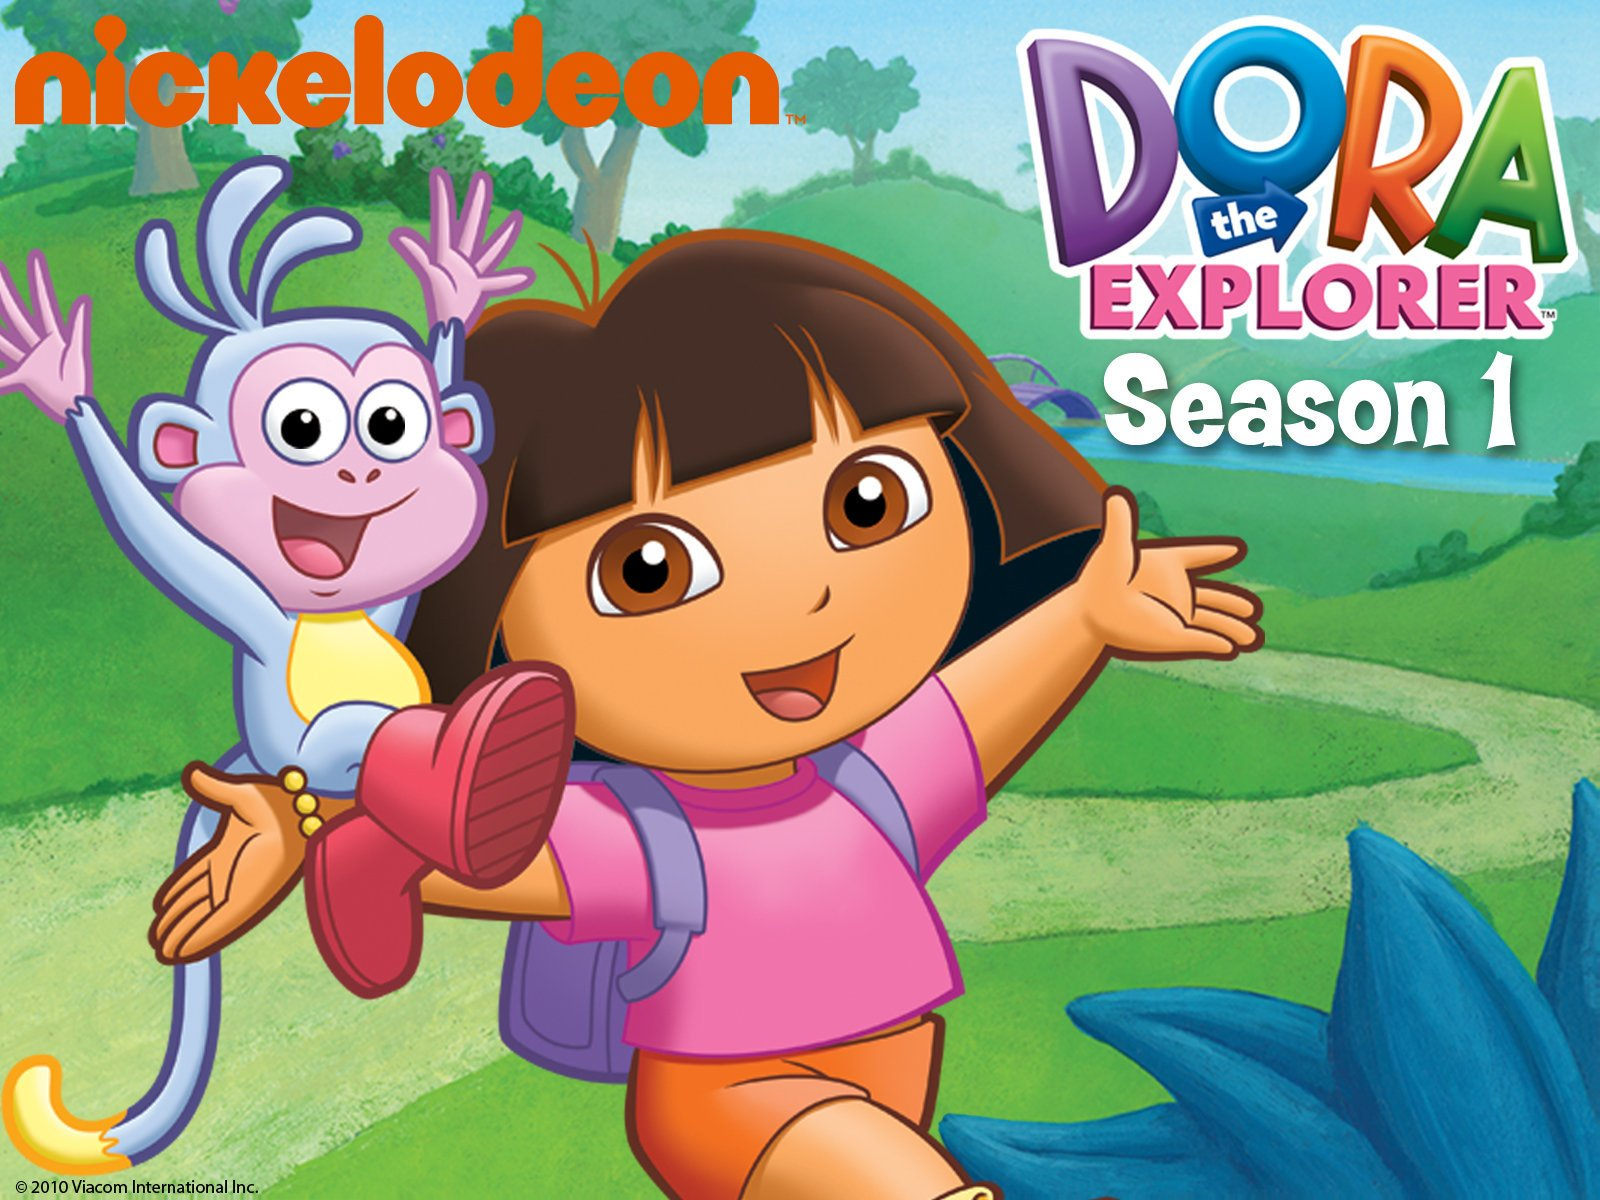 Amazon com: Watch Dora the Explorer Season 1 | Prime Video